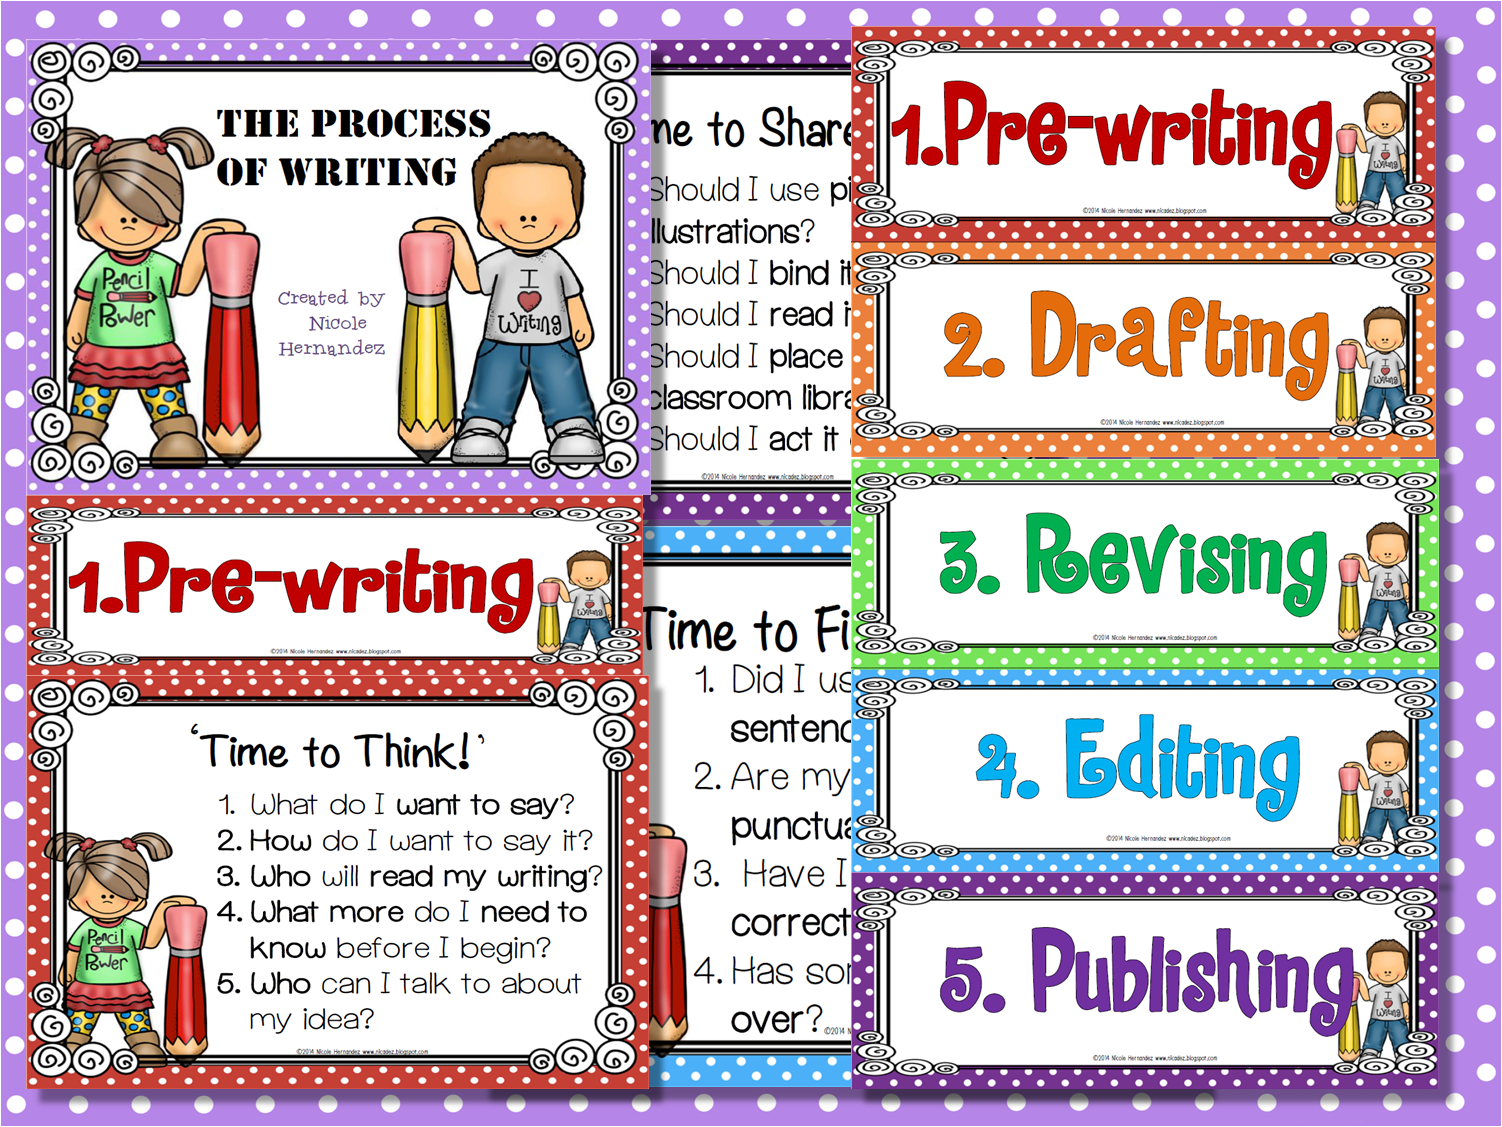 http://www.teacherspayteachers.com/Product/The-Process-of-Writing-Posters-The-5-Steps-to-Writing-Success-1184589